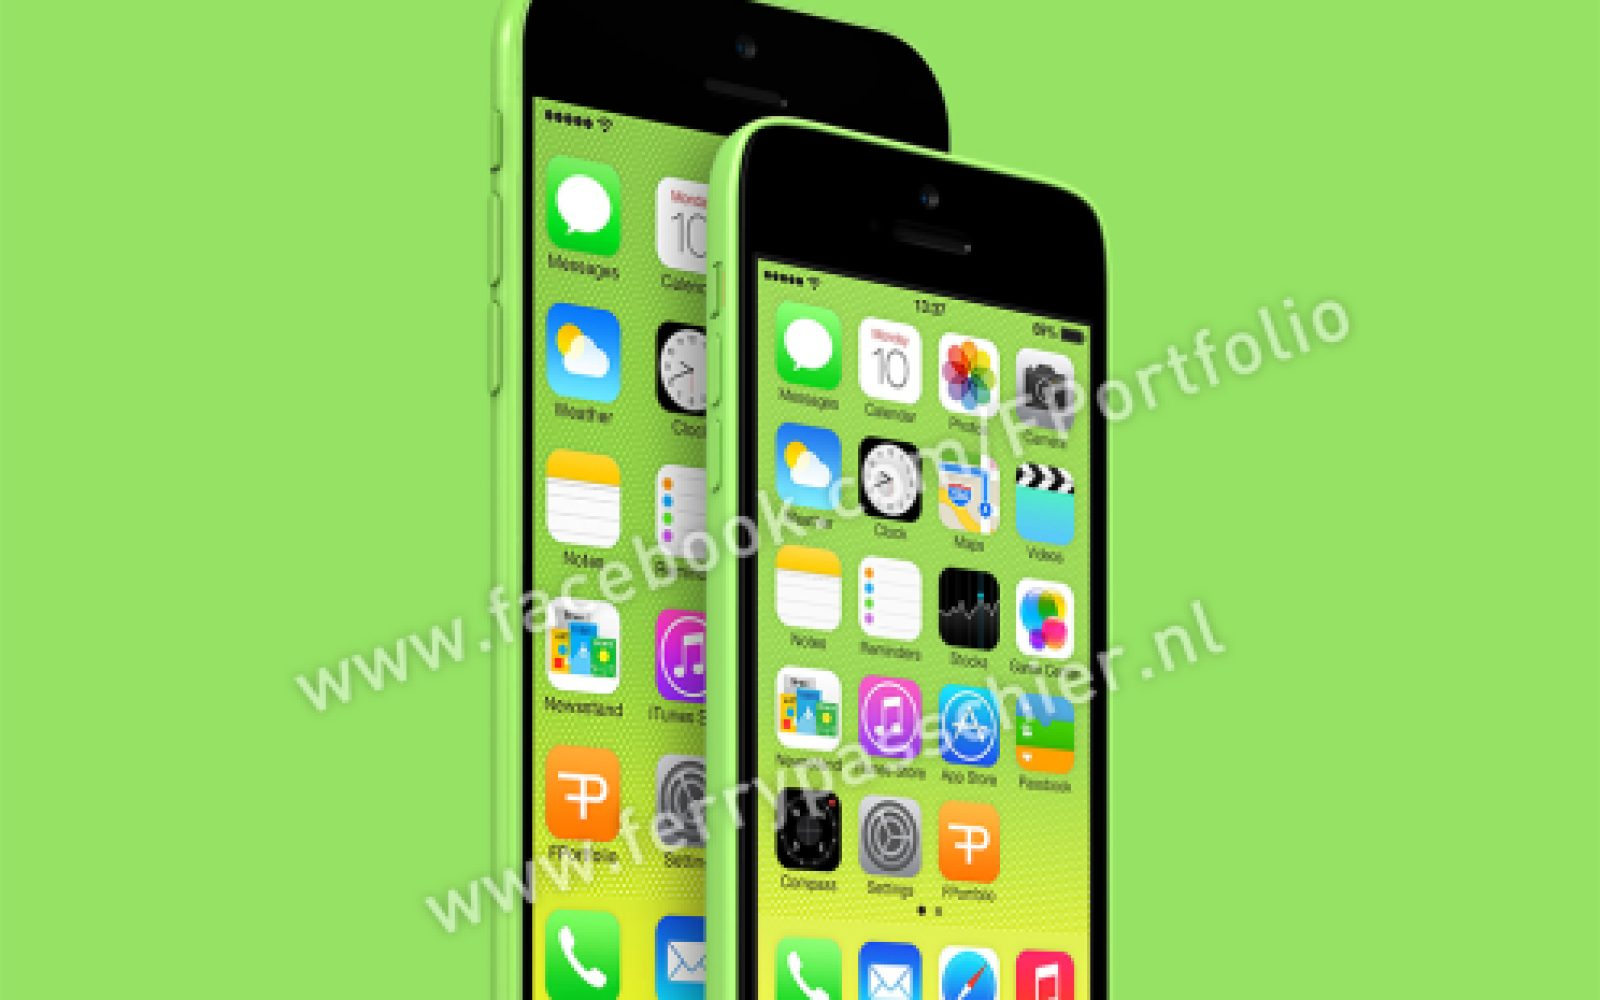 26b0504265ff7d New rumor claims Apple will launch three iPhone models this year, including  4-inch iPhone 6C